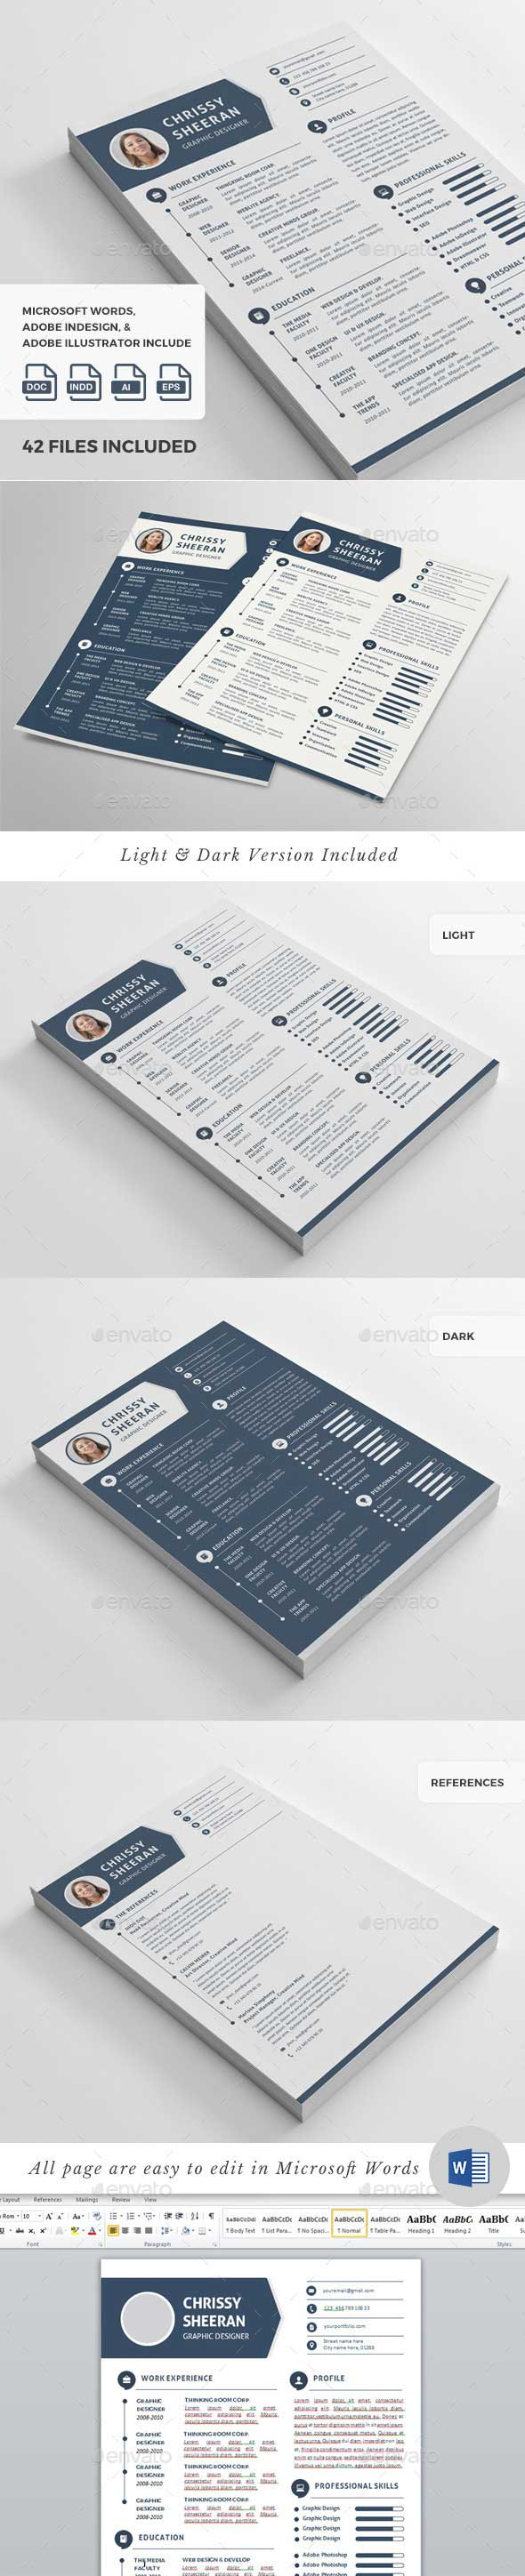 professional-resume-cv-template-in-microsoft-word-indesign-and-illustrator-files